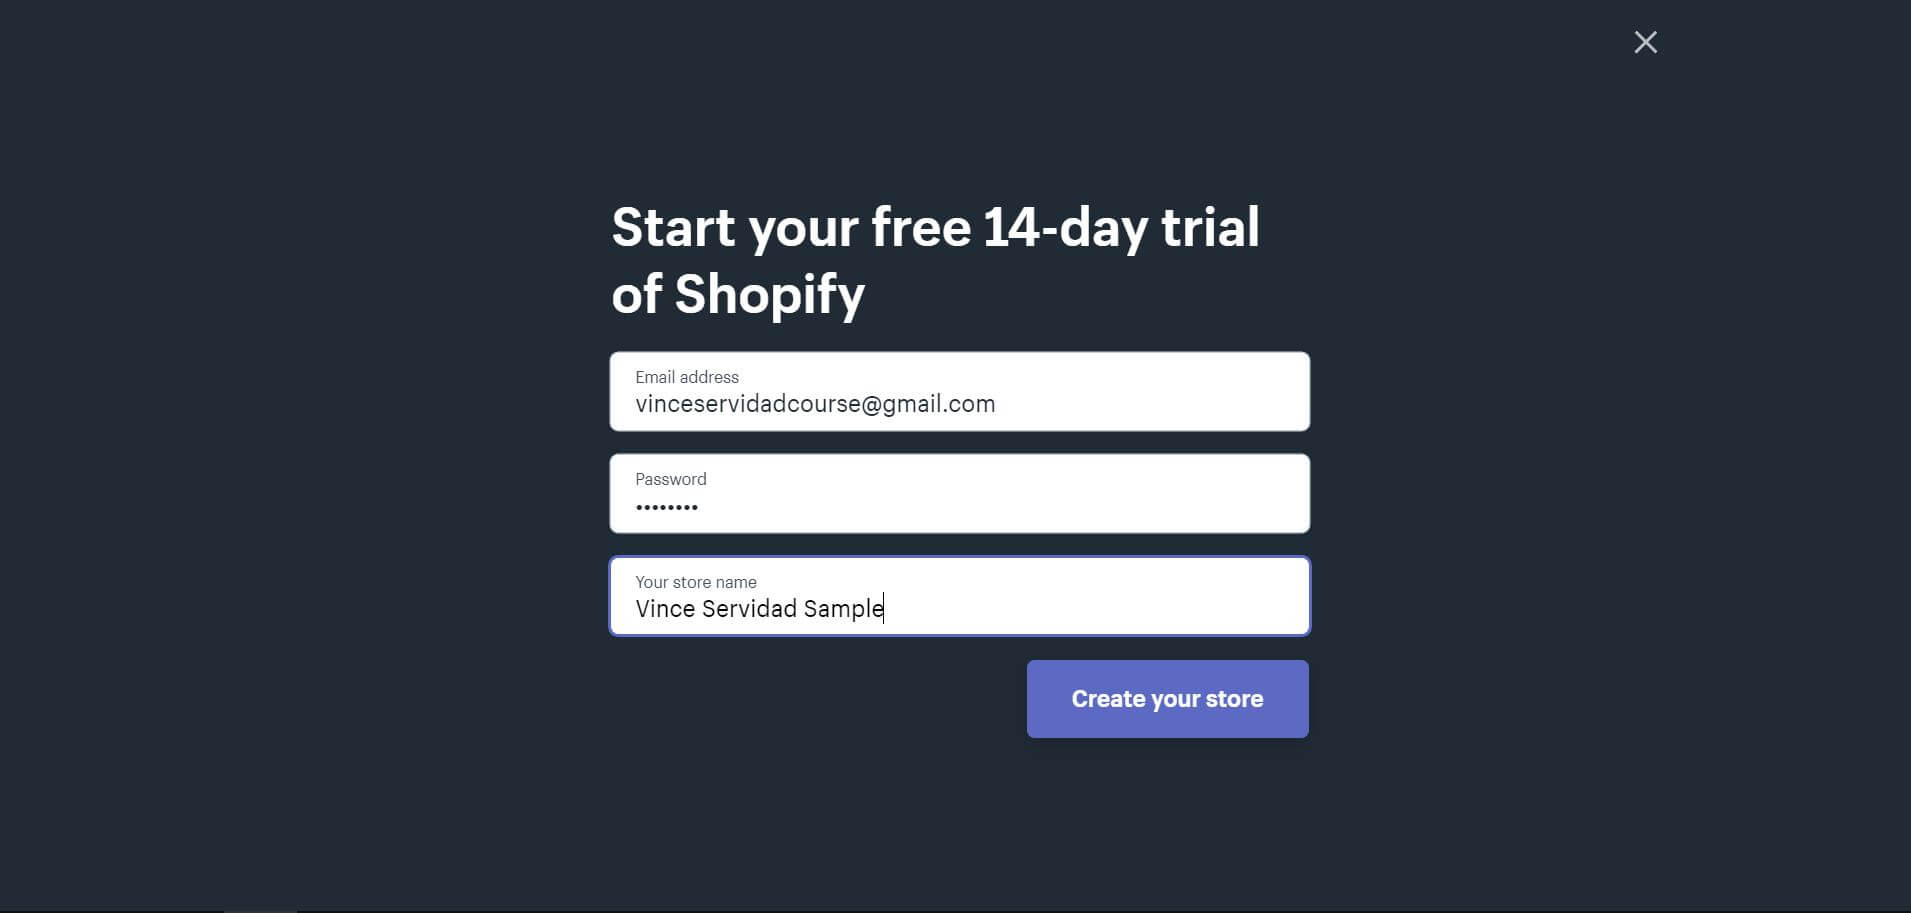 Shopify Free 14-Day Trial